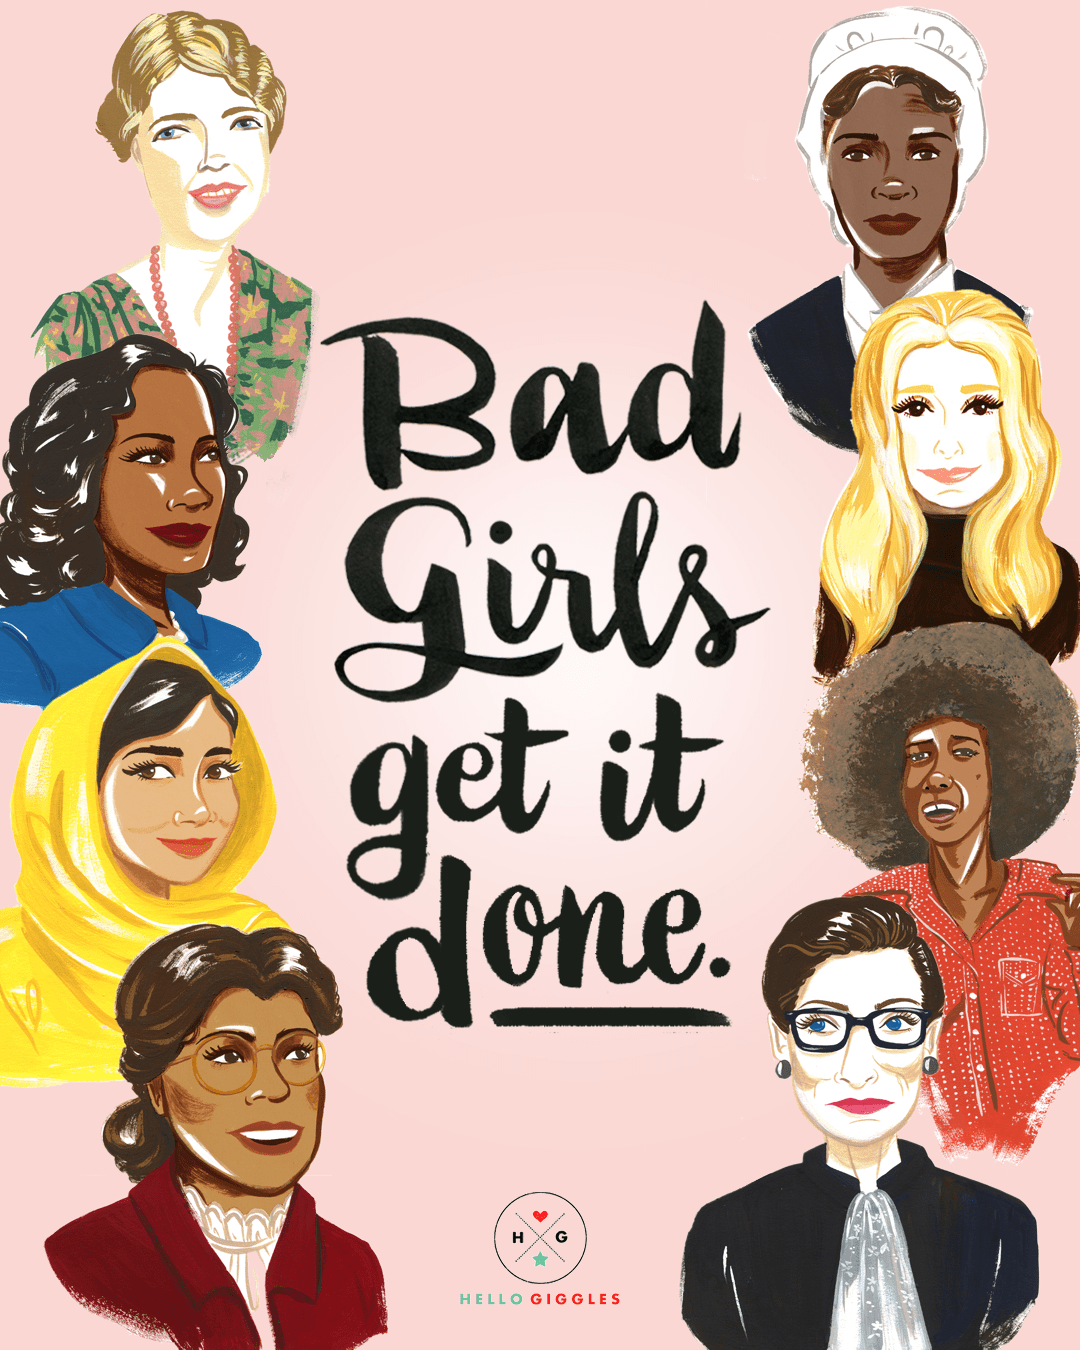 Girl Boss Quotes Wallpaper For Phone Celebrate International Women S Day By Downloading This